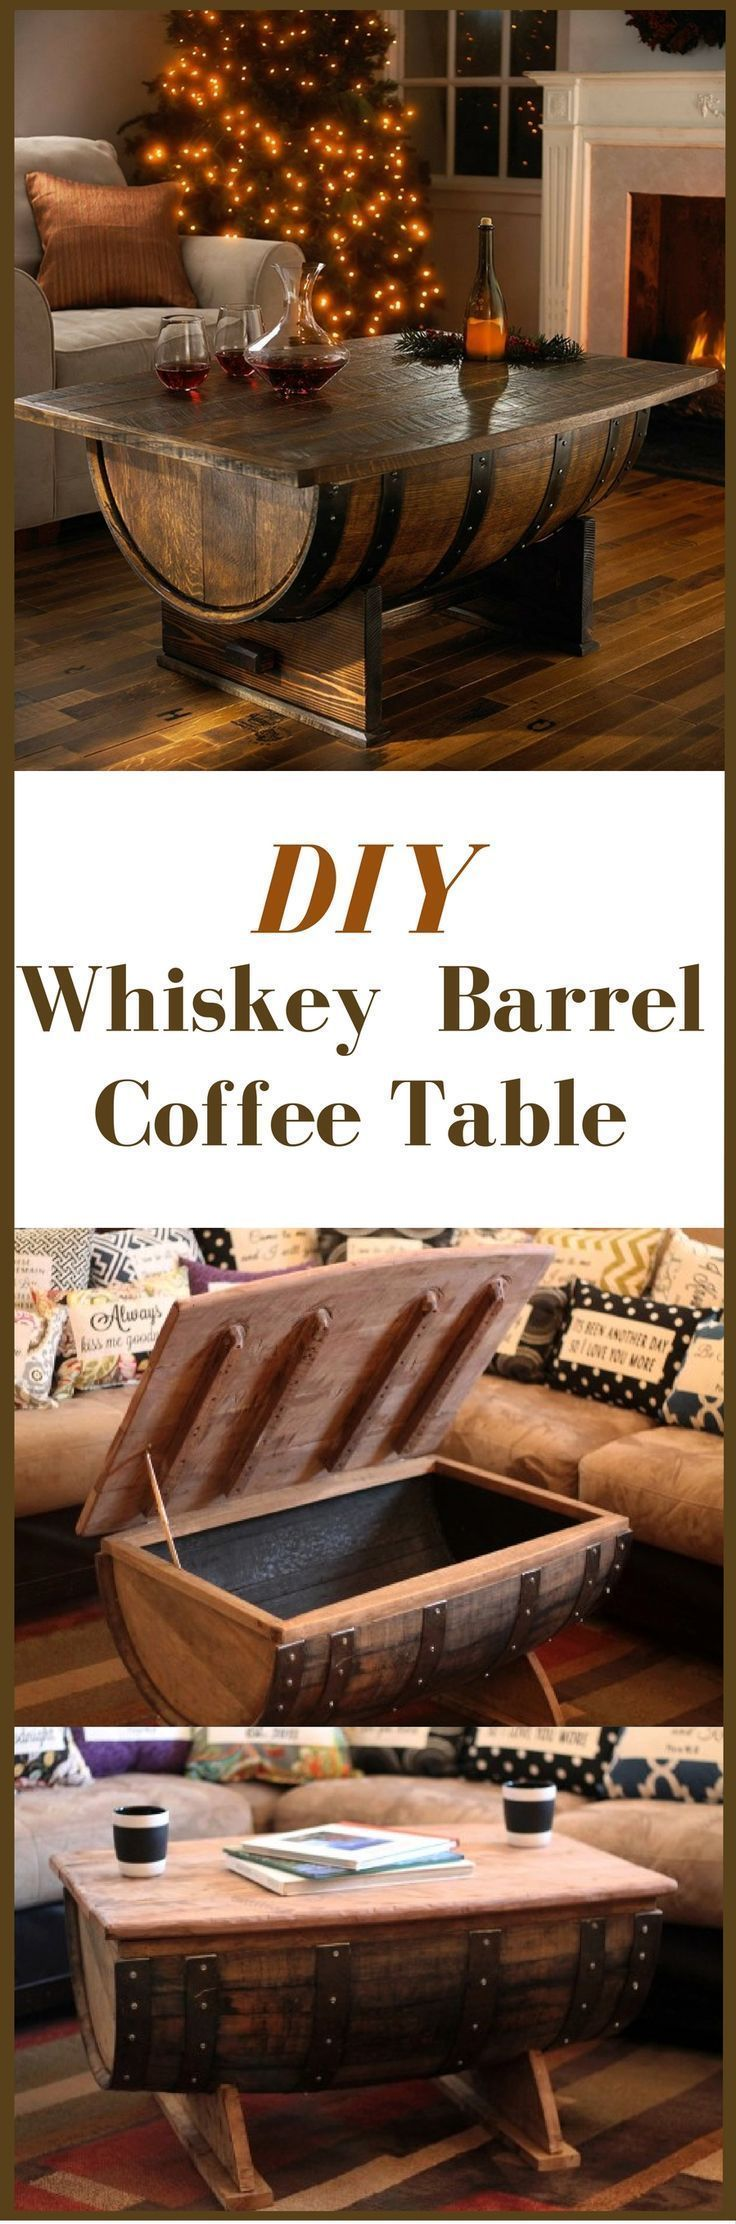 cool cool How To Build A Whiskey Barrel Coffee Table vid.staged.com/67Ws… by www.be… by www.best99-home-d…